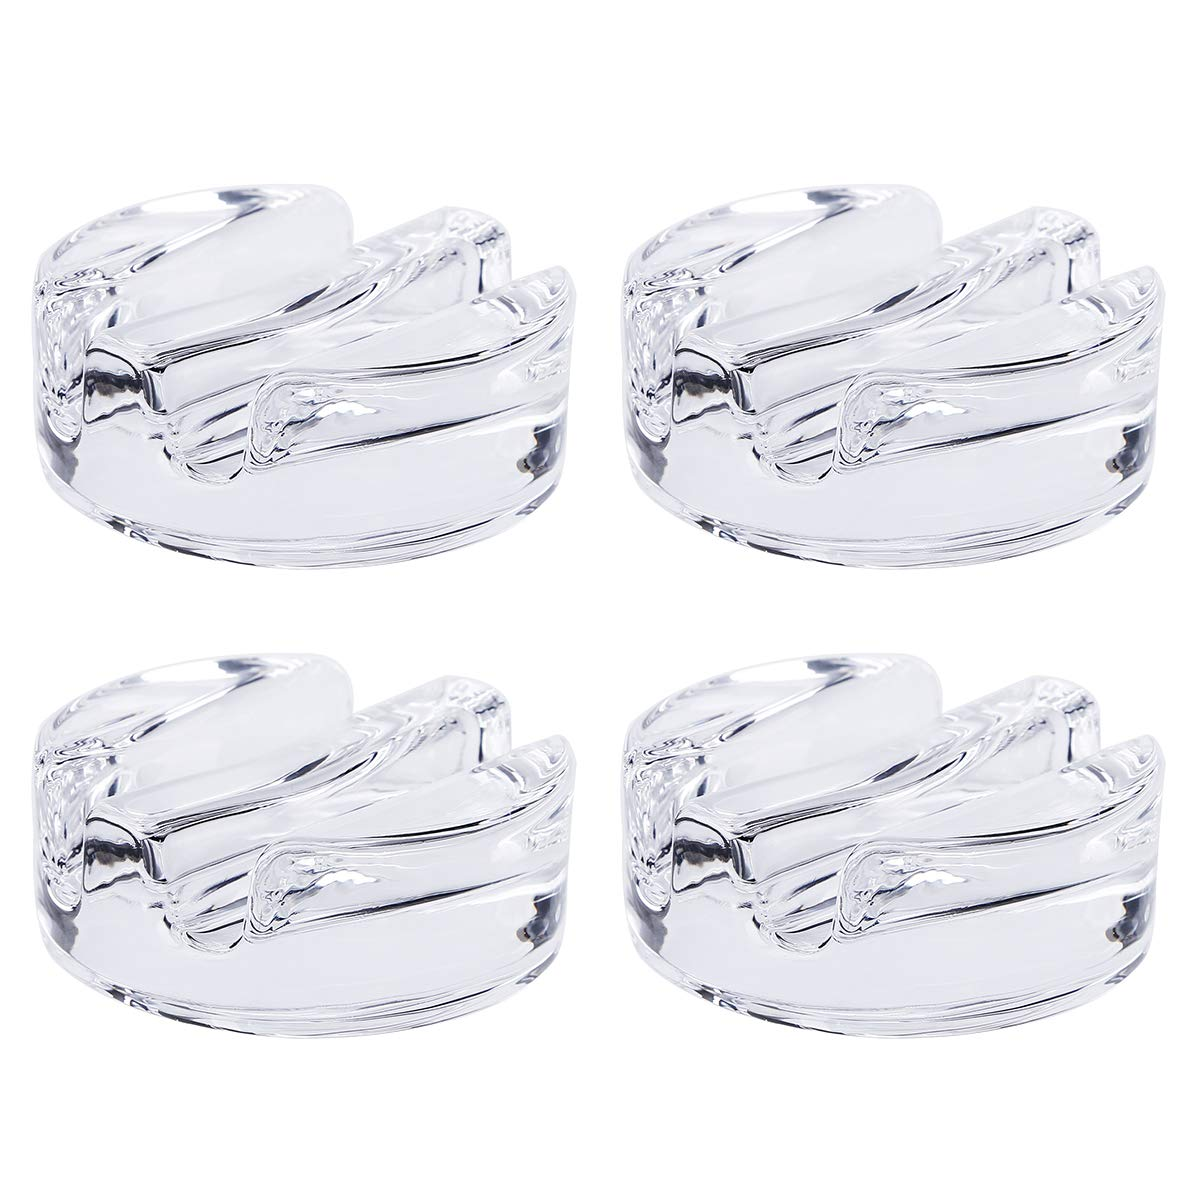 Aozita 4-Pack Glass Fermentation Weights - Fermenting Weights with Grooved Handle - Fits Any Wide Mouth Mason Jar